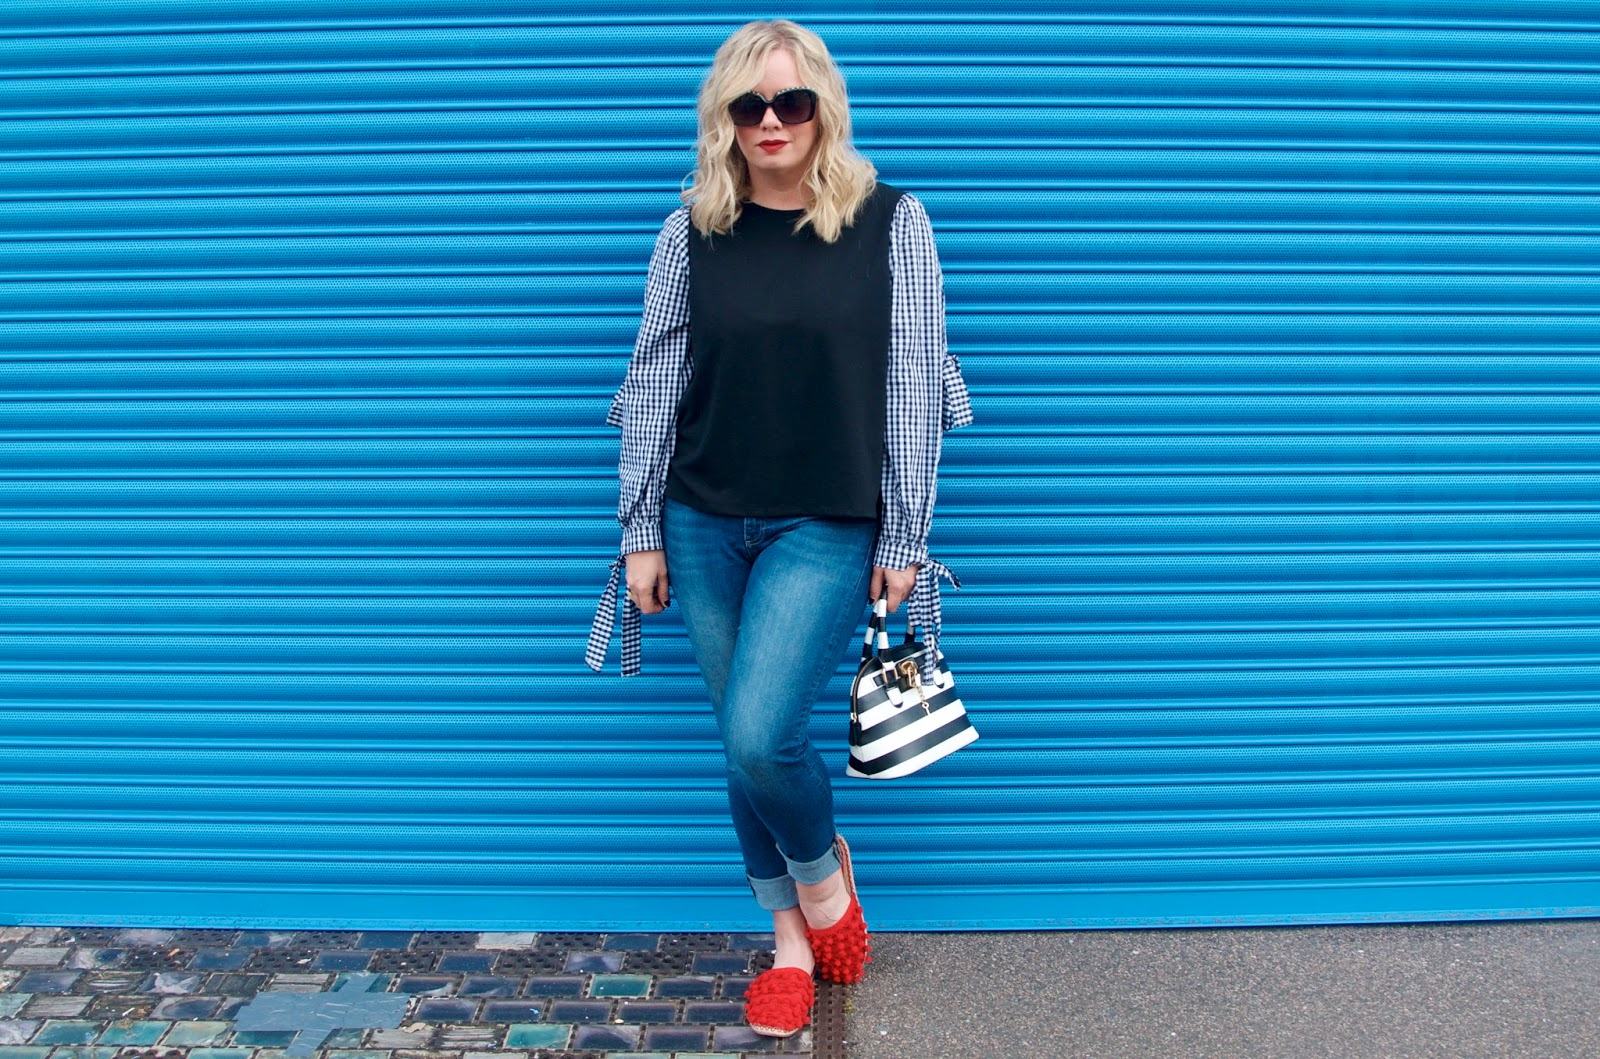 blue wall, gingham sleeves, red shoes, jeans and striped bag